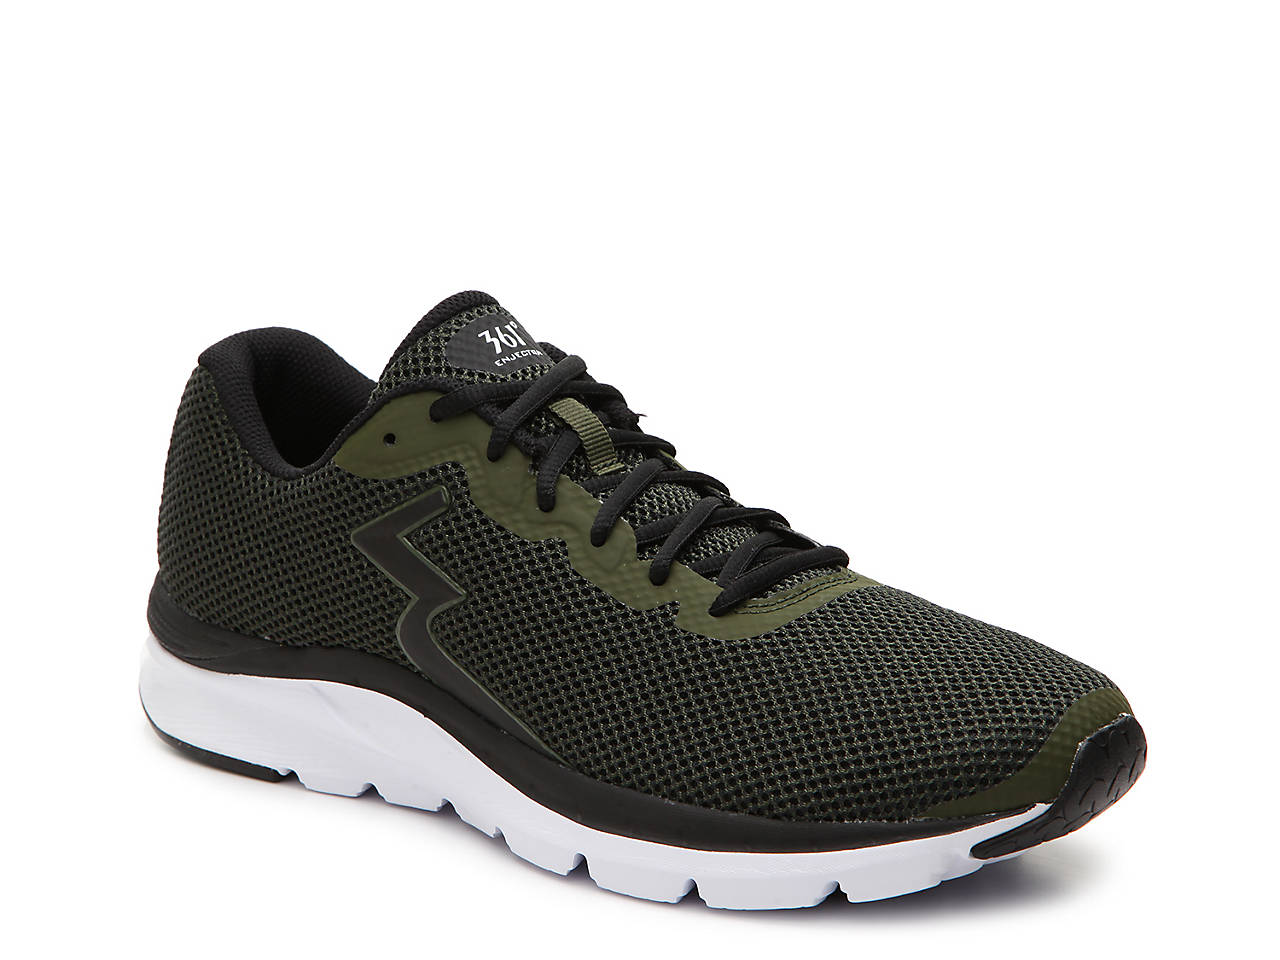 outlet low shipping 361 Degree Black Active Running Shoes cheap Manchester discount limited edition Uiq9D